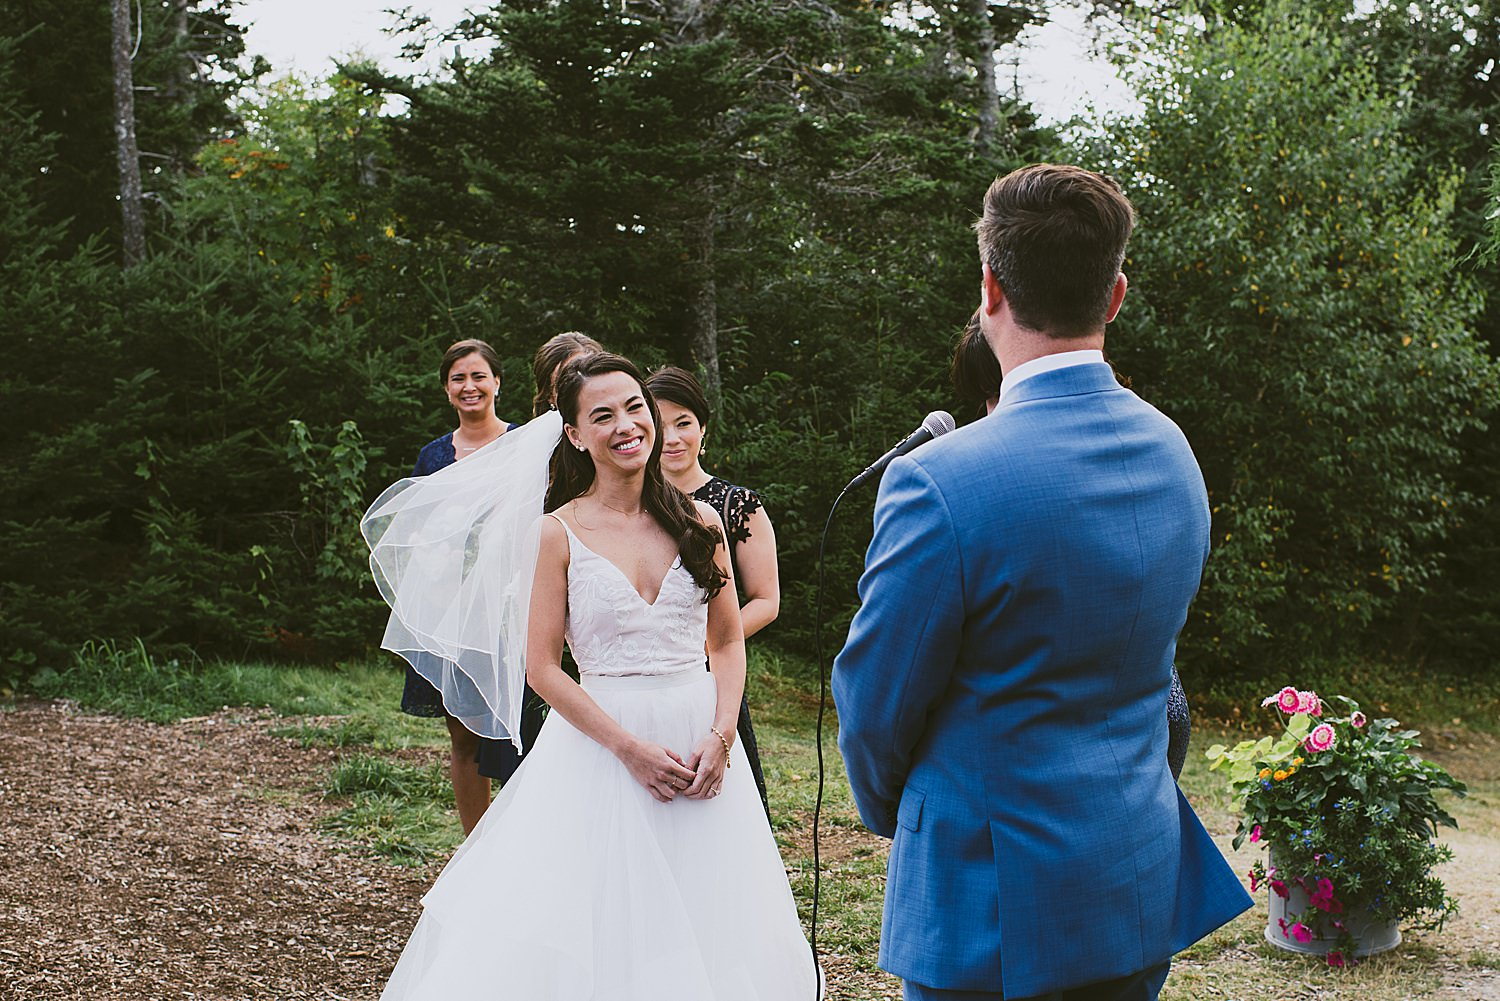 Bride laughing at groom during ceremony